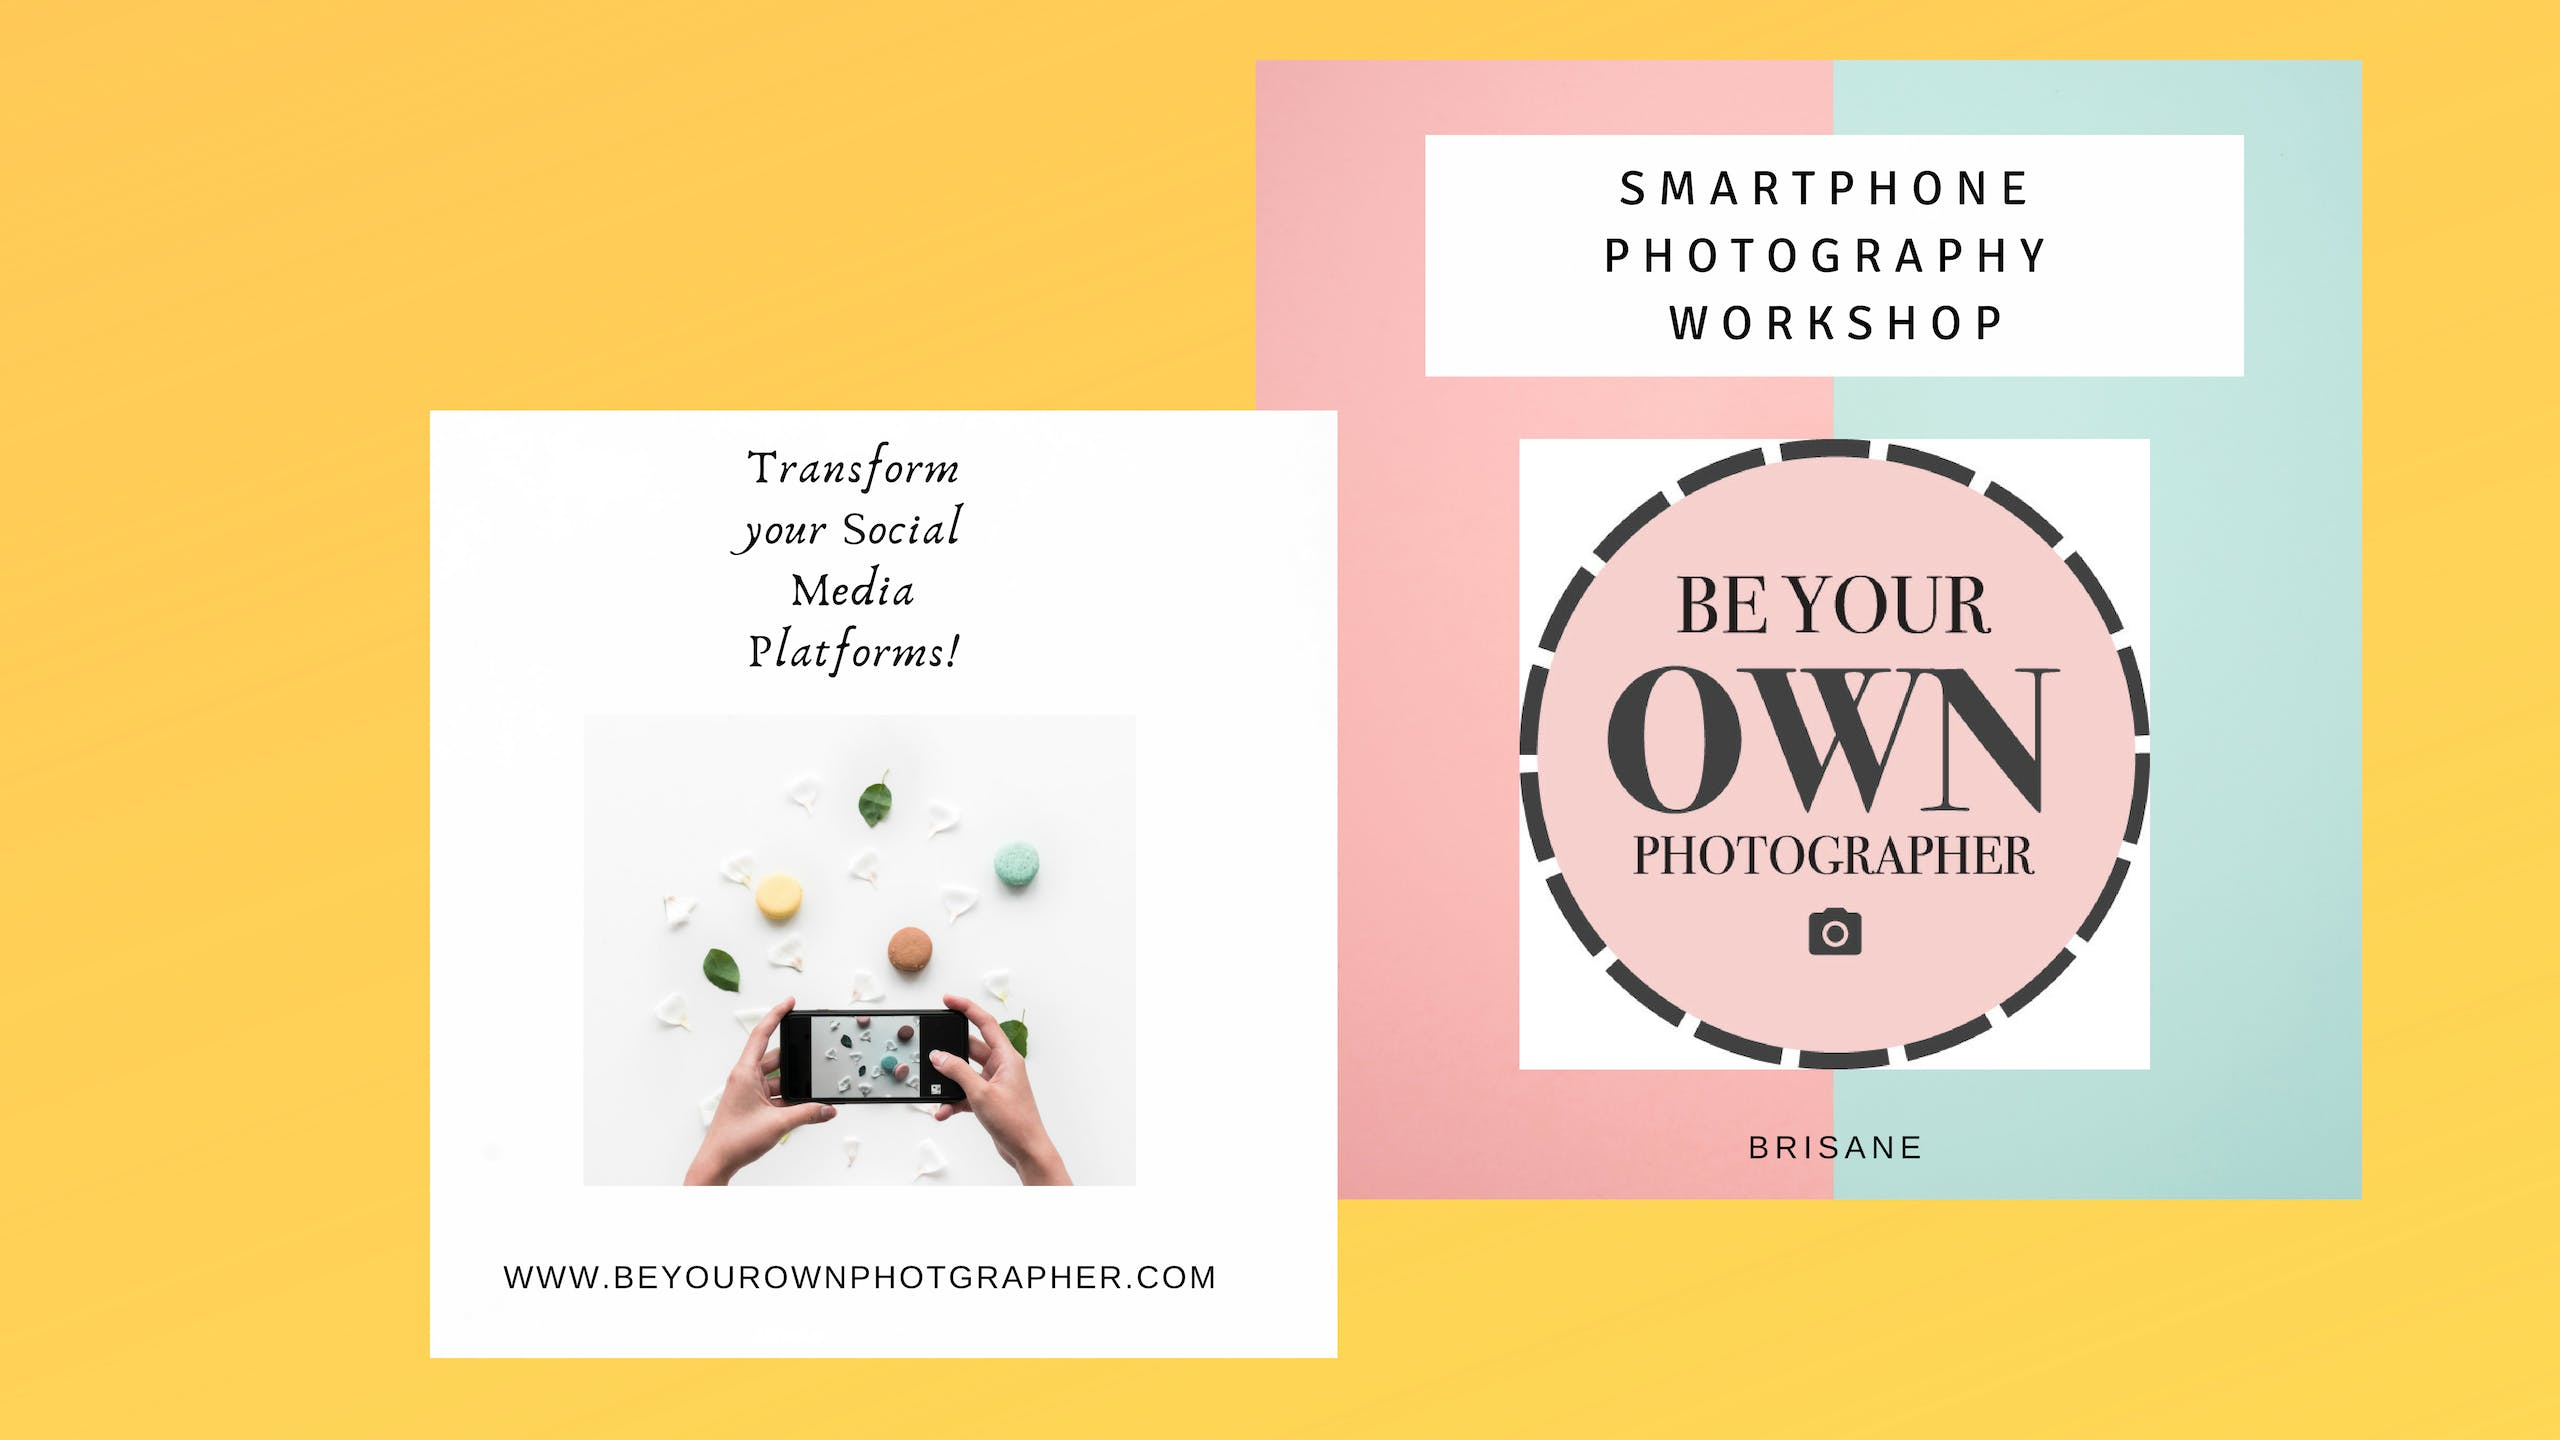 Smartphone Photography for Family/Business